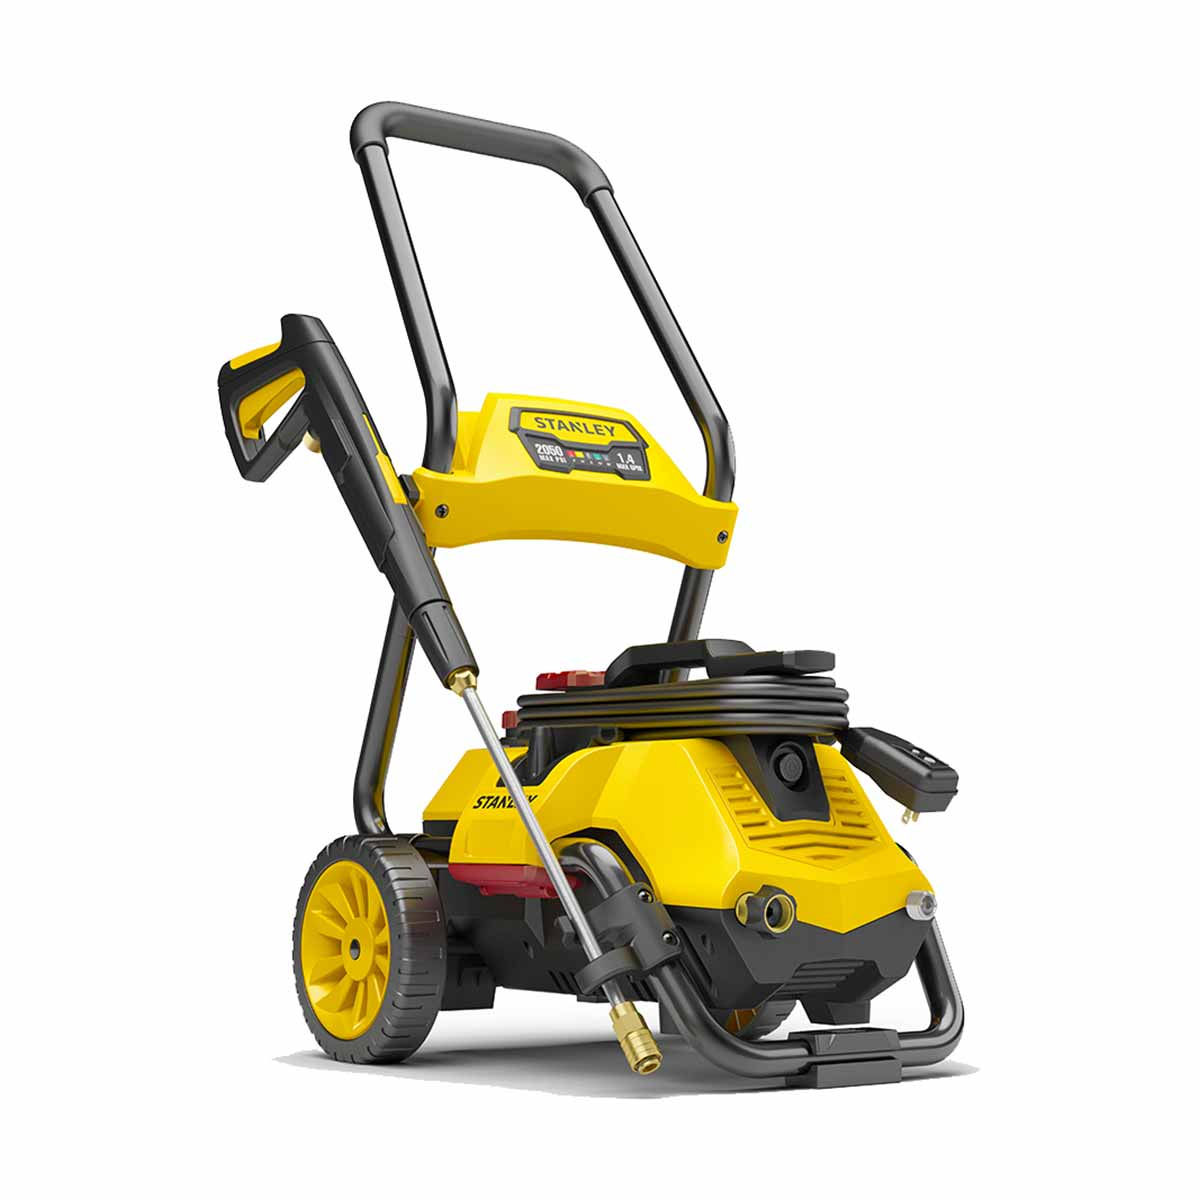 STANLEY SLP2050 PSI electric pressure washer